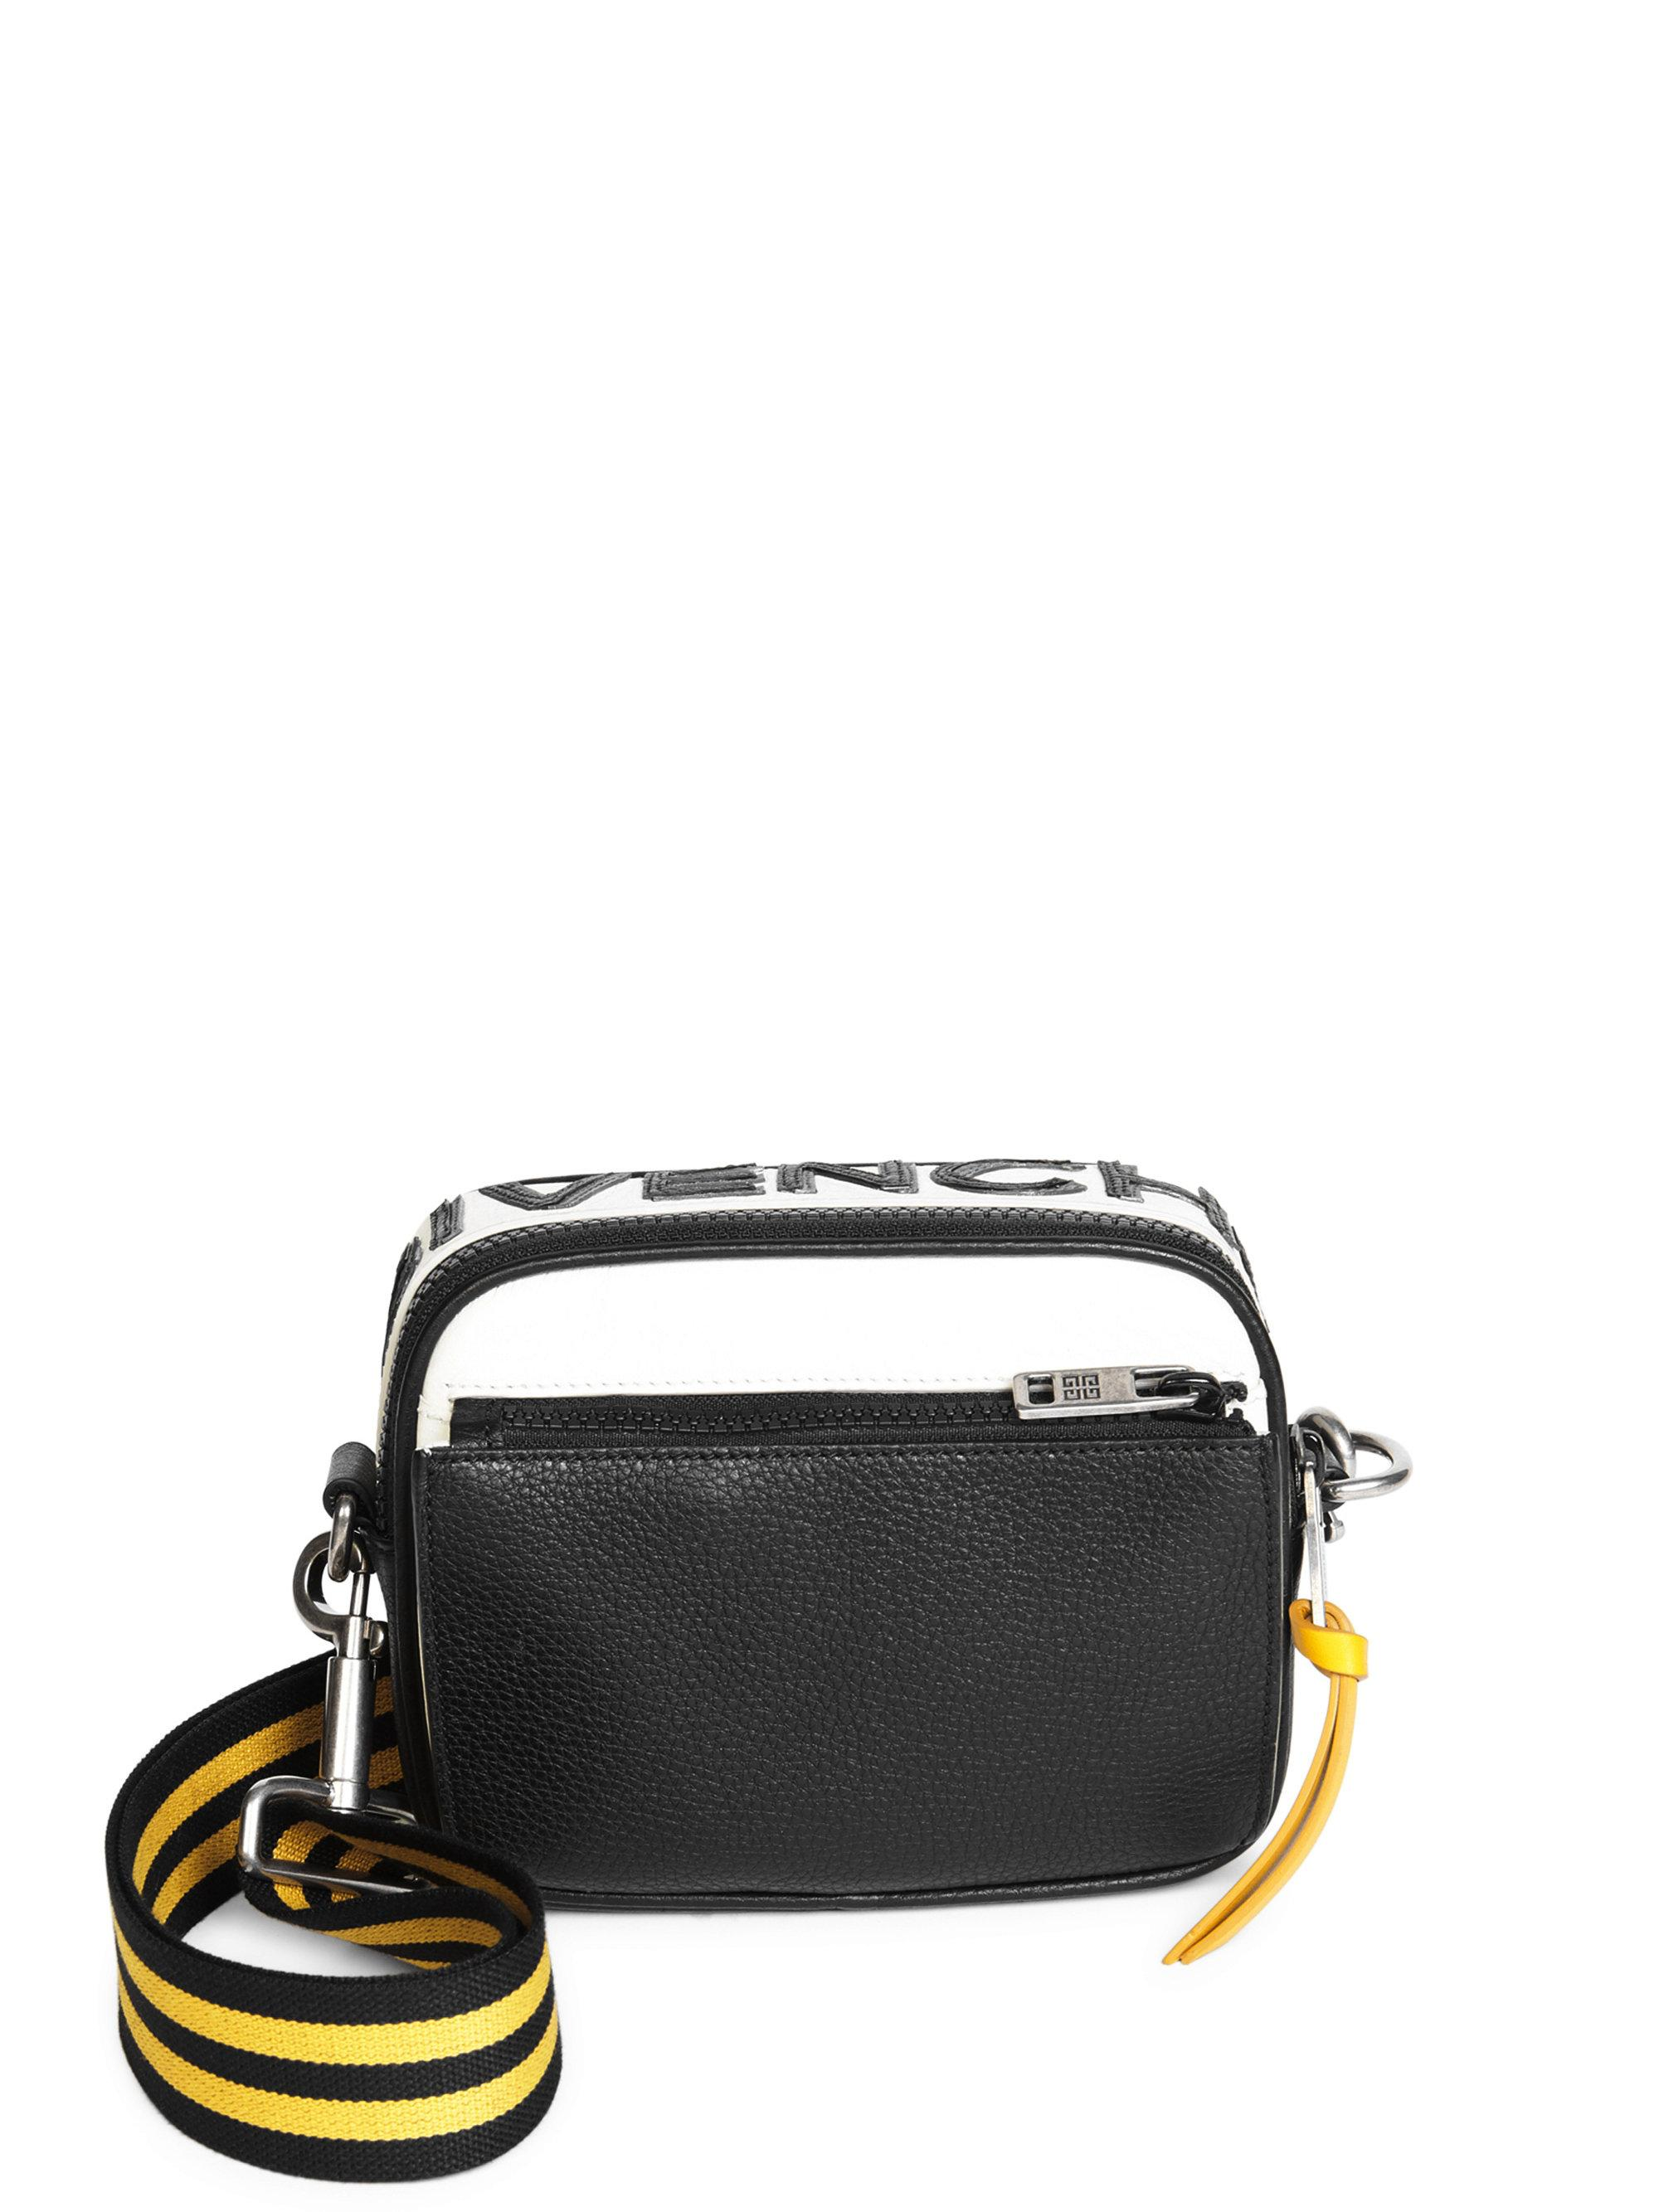 Givenchy Colorblocked Leather Crossbody Bag in Black for Men - Lyst c13ba030b6